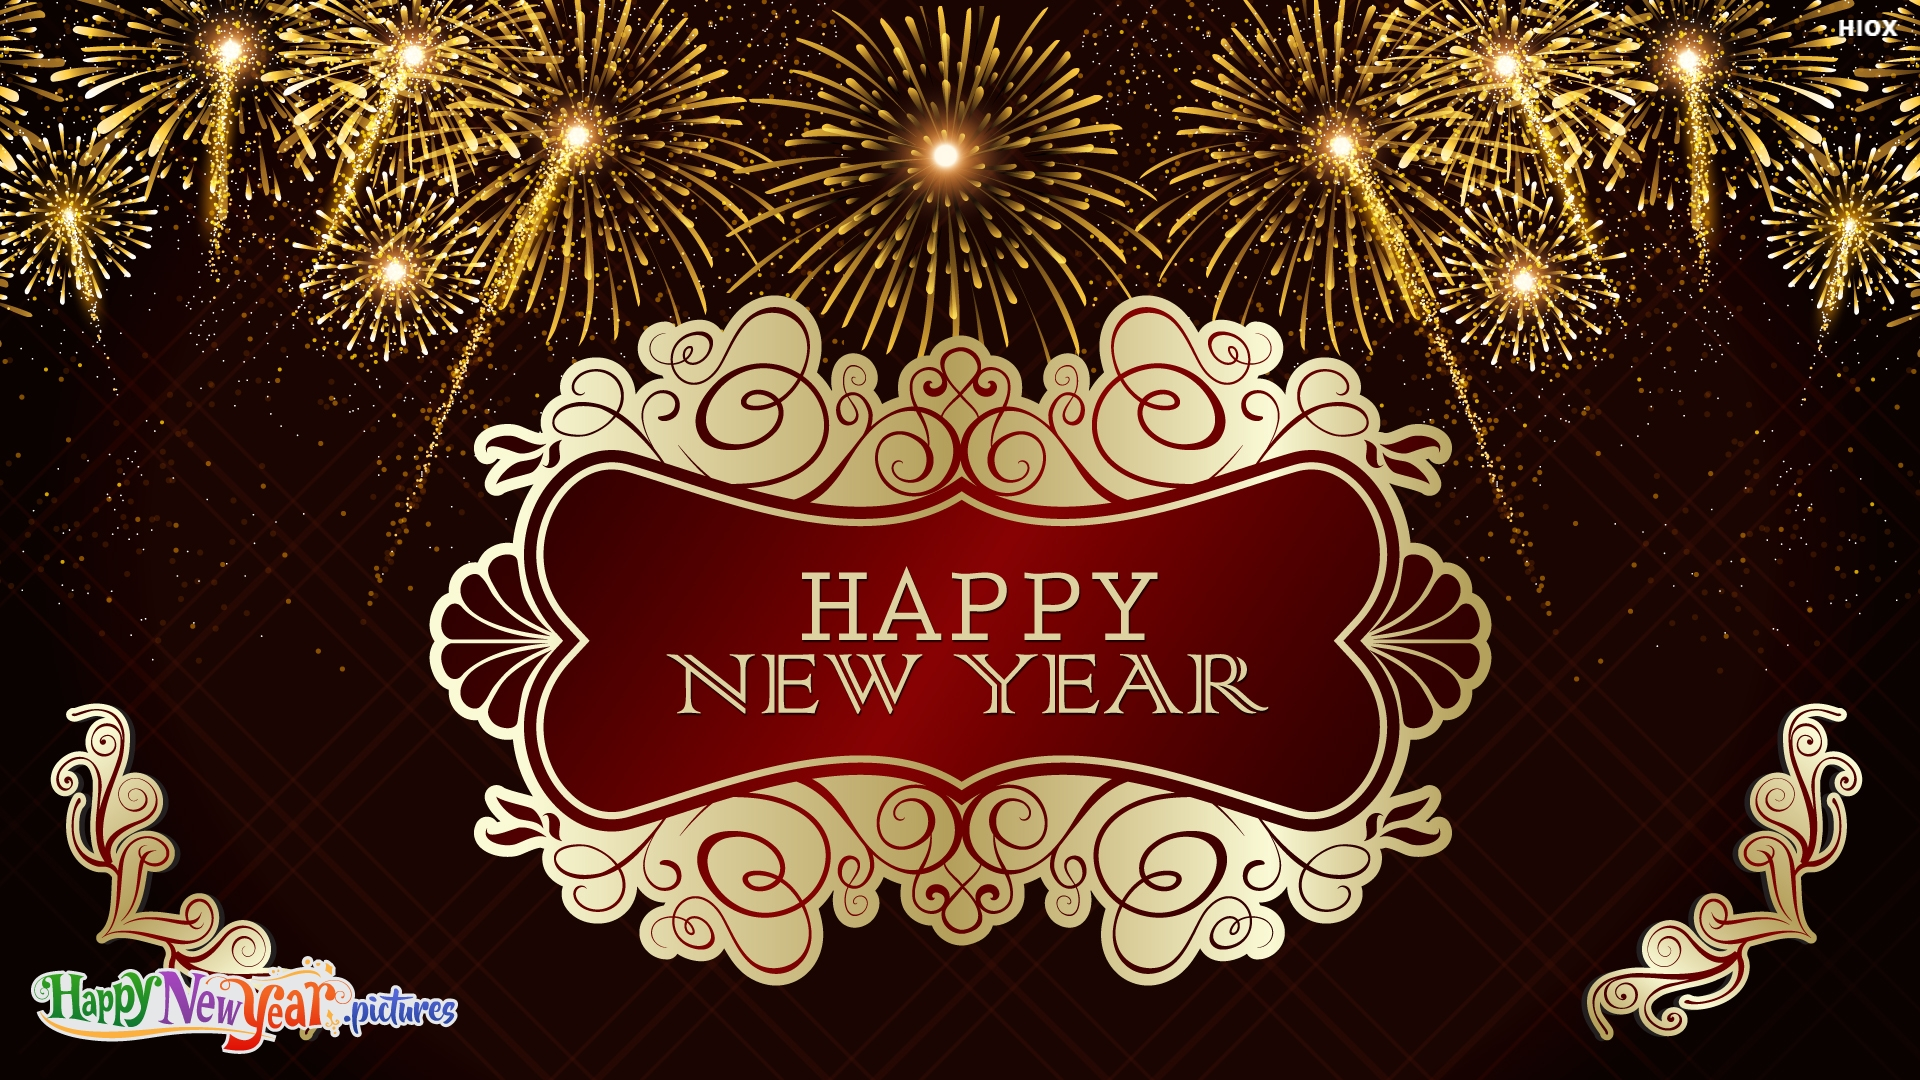 Happy New Year My Lovely Friends